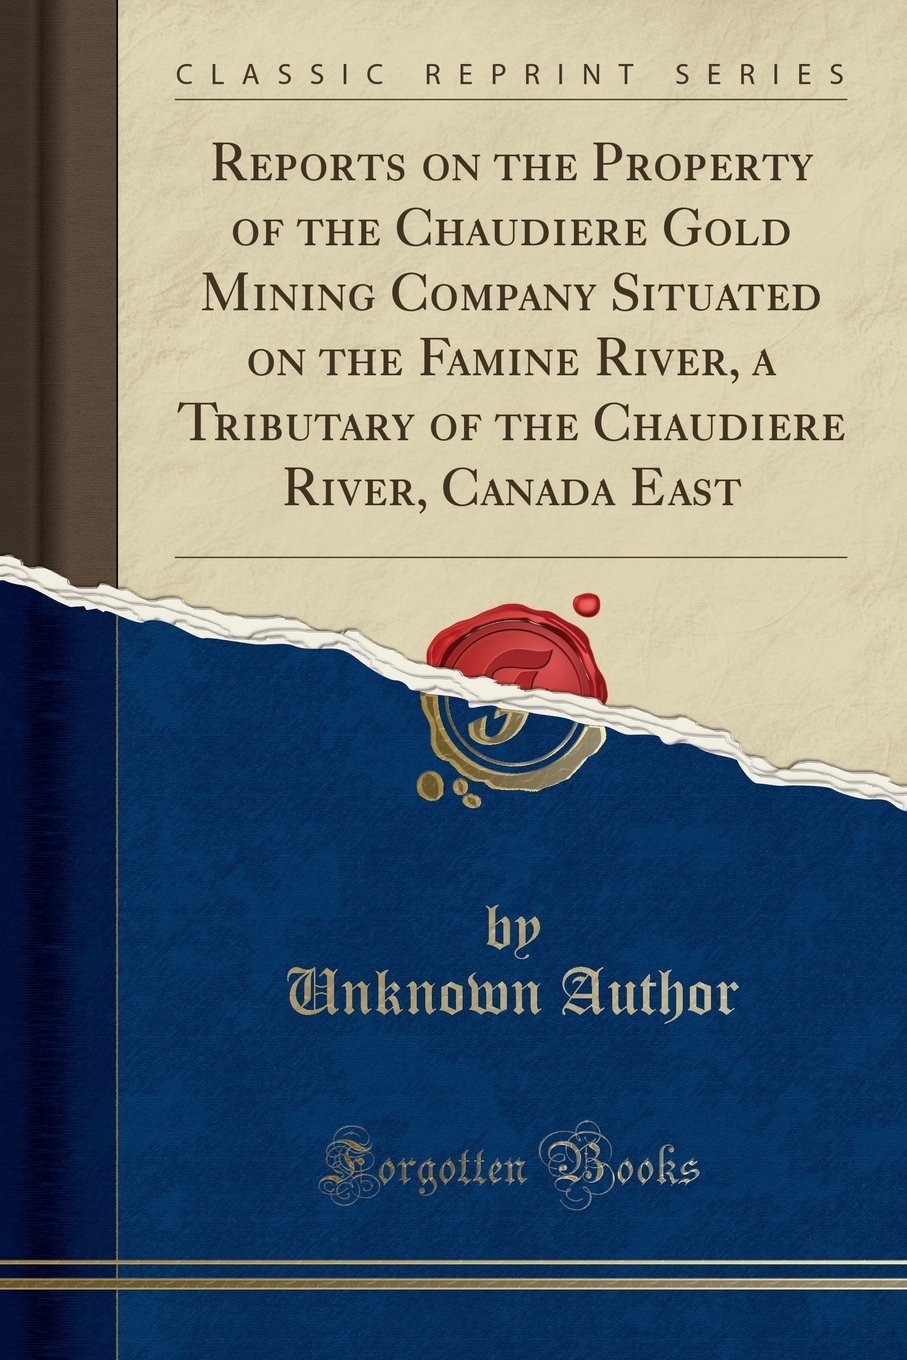 Download Reports on the Property of the Chaudiere Gold Mining Company Situated on the Famine River, a Tributary of the Chaudiere River, Canada East (Classic Reprint) ebook